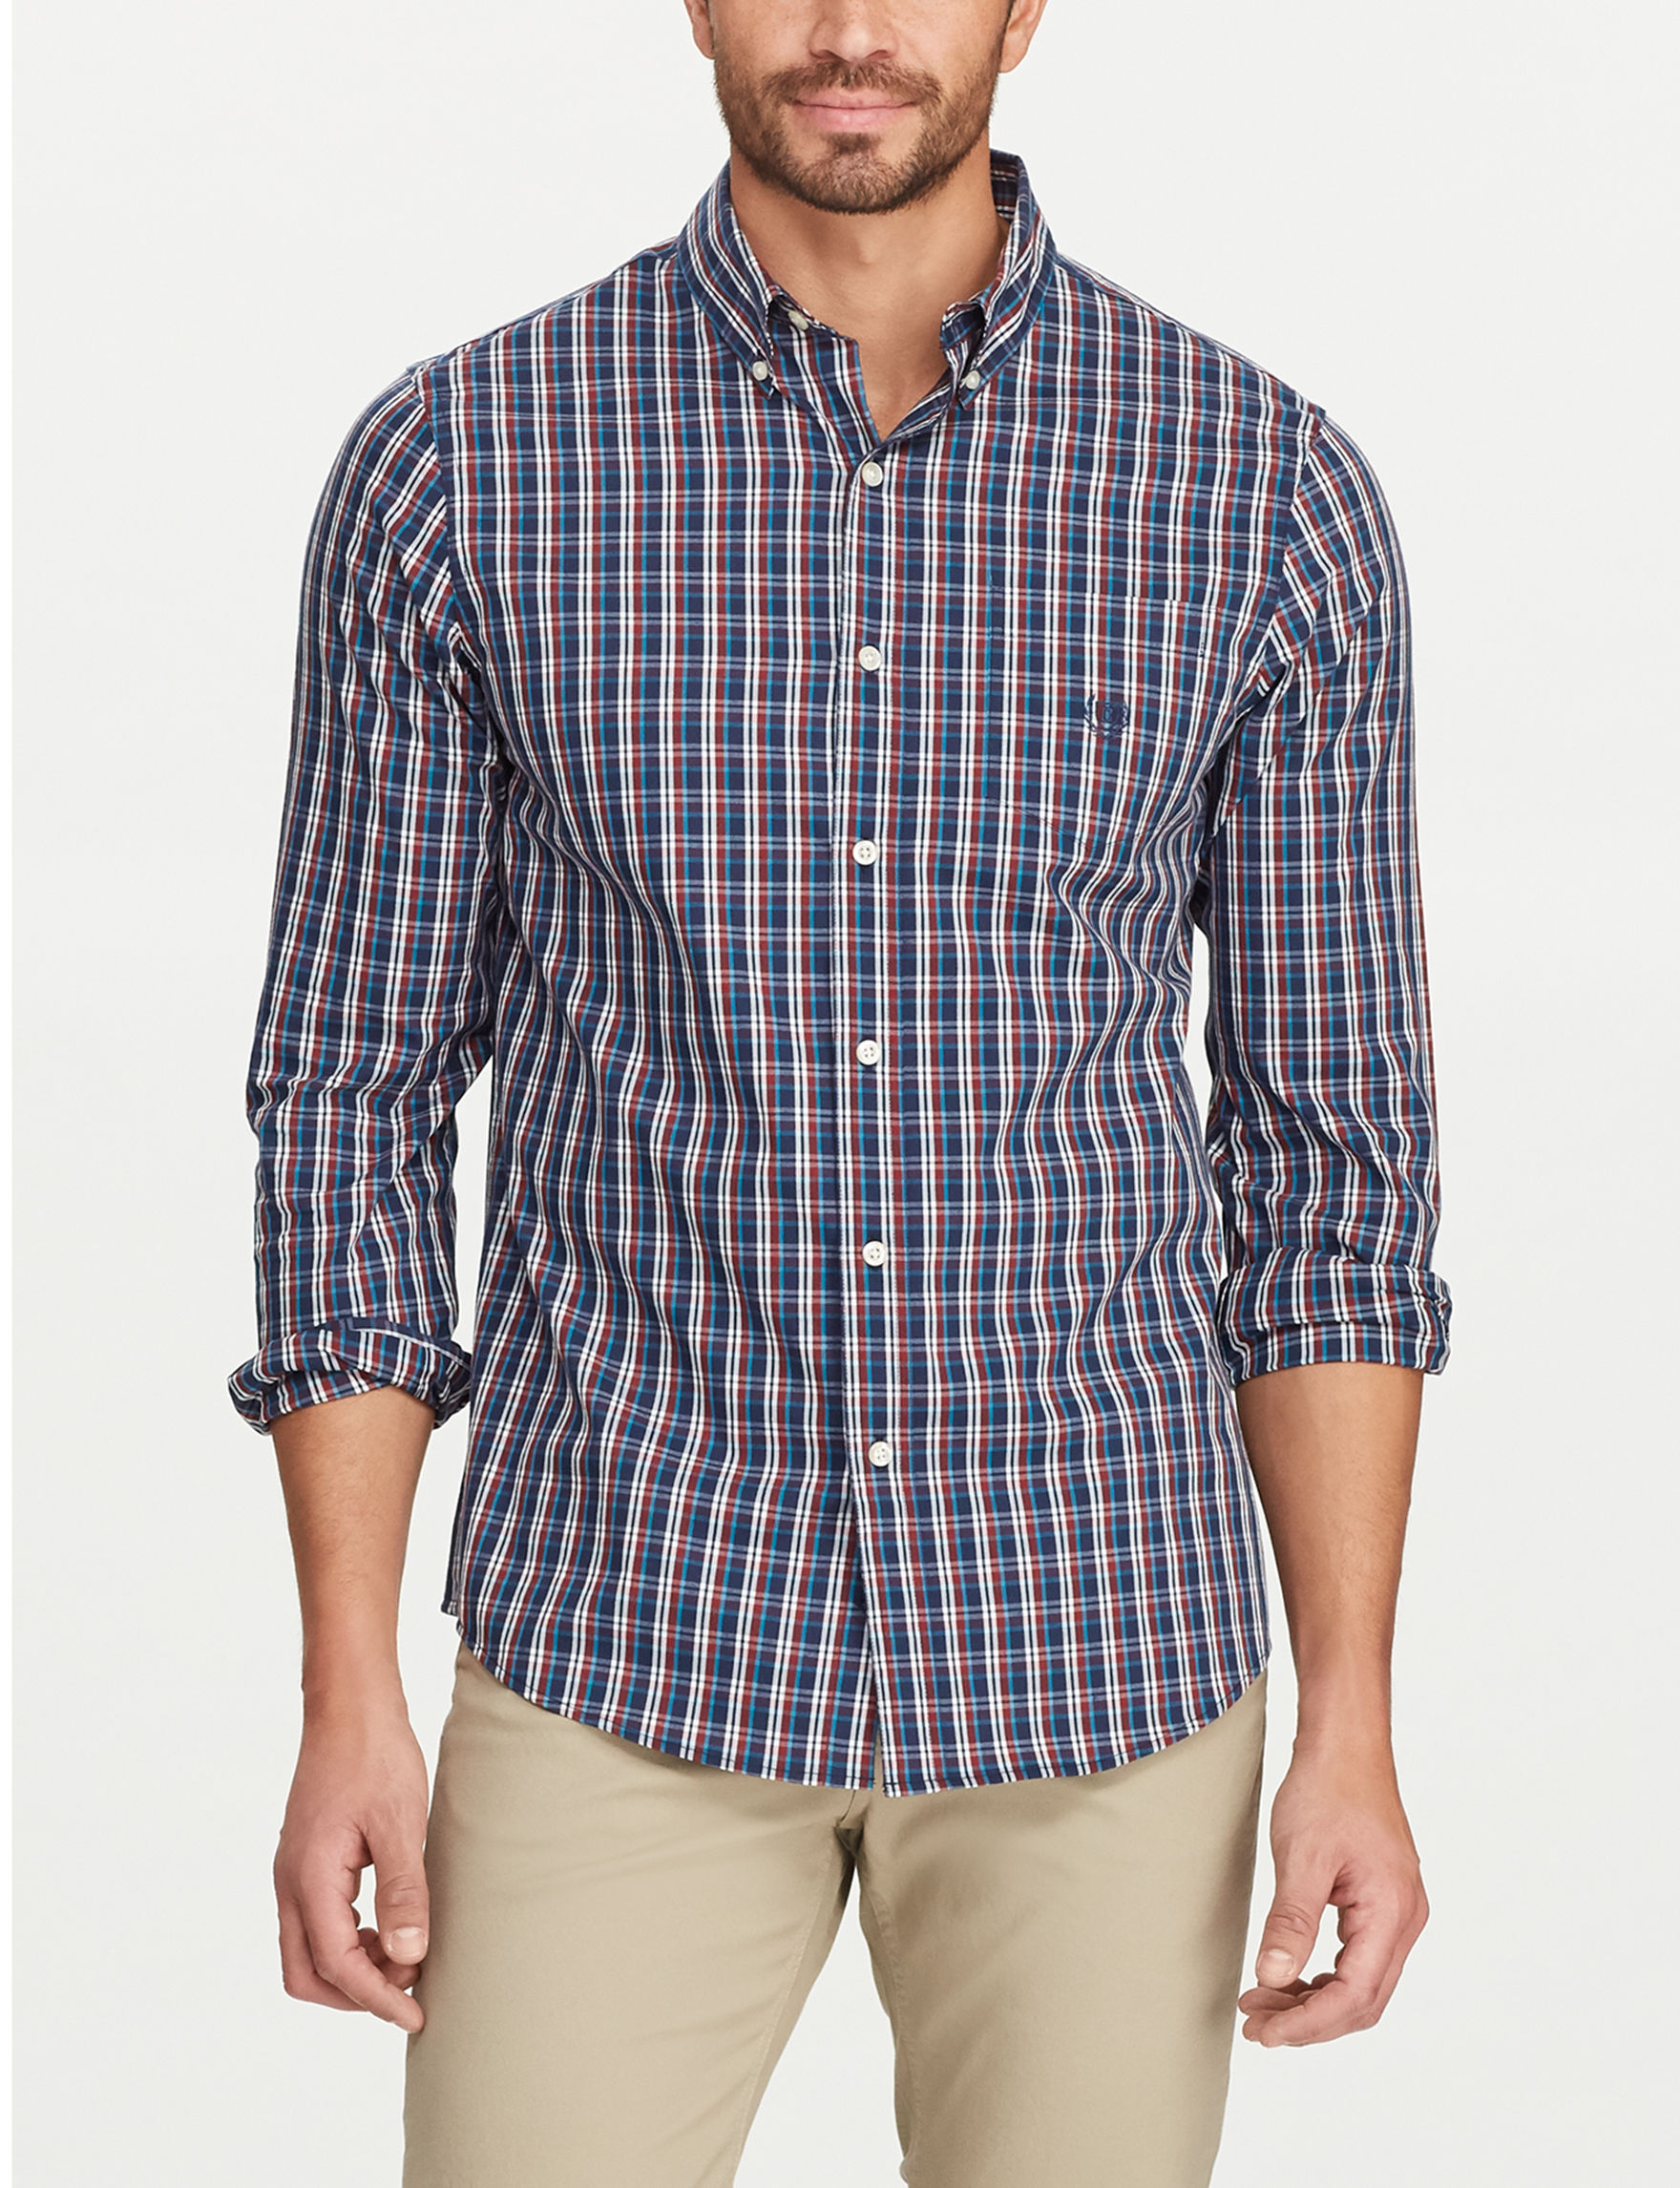 Chaps Navy / Multi Casual Button Down Shirts